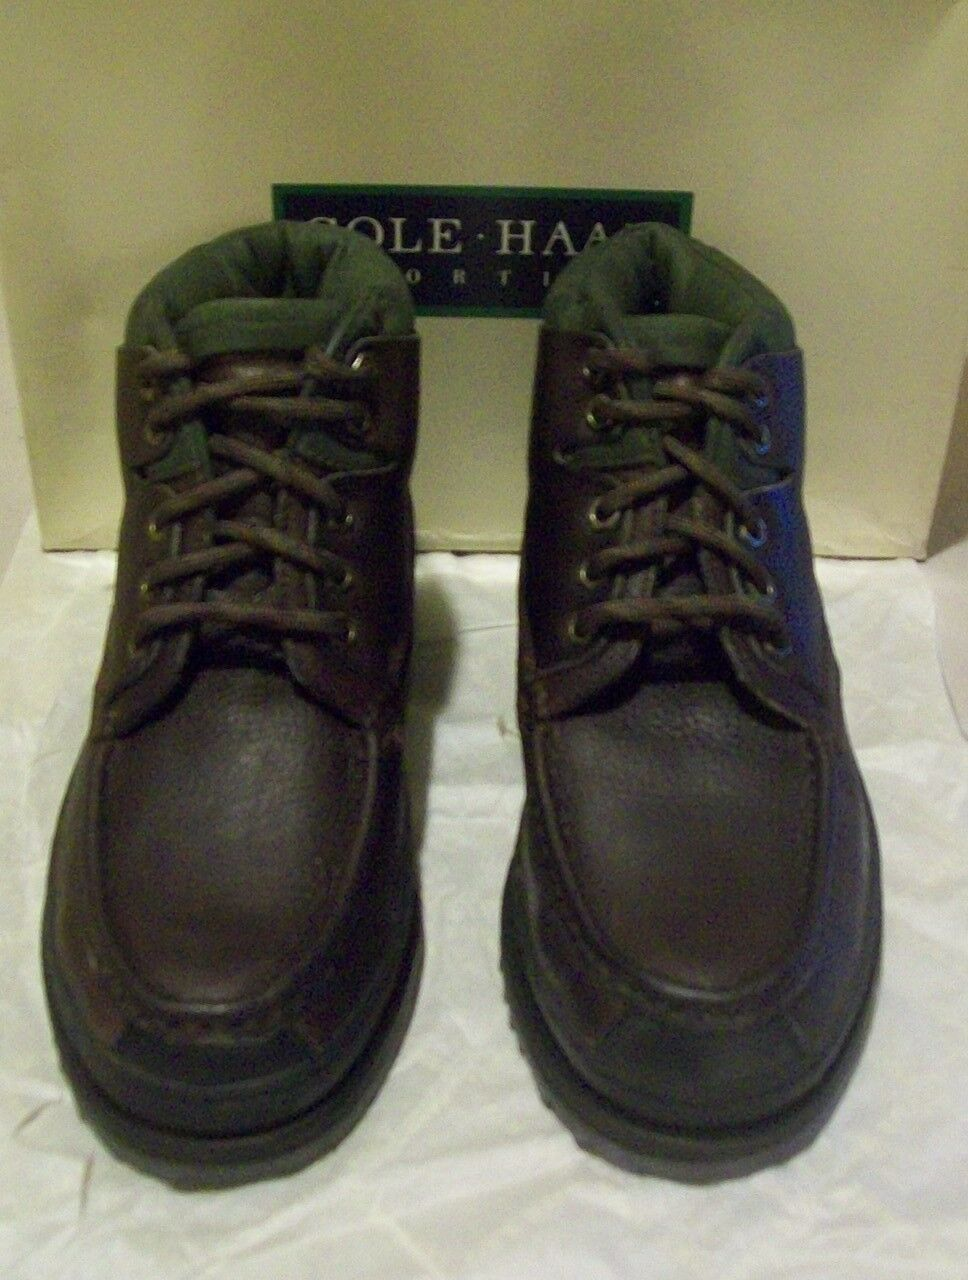 New Cole-Haan #03915 8.5 D brown (3796)